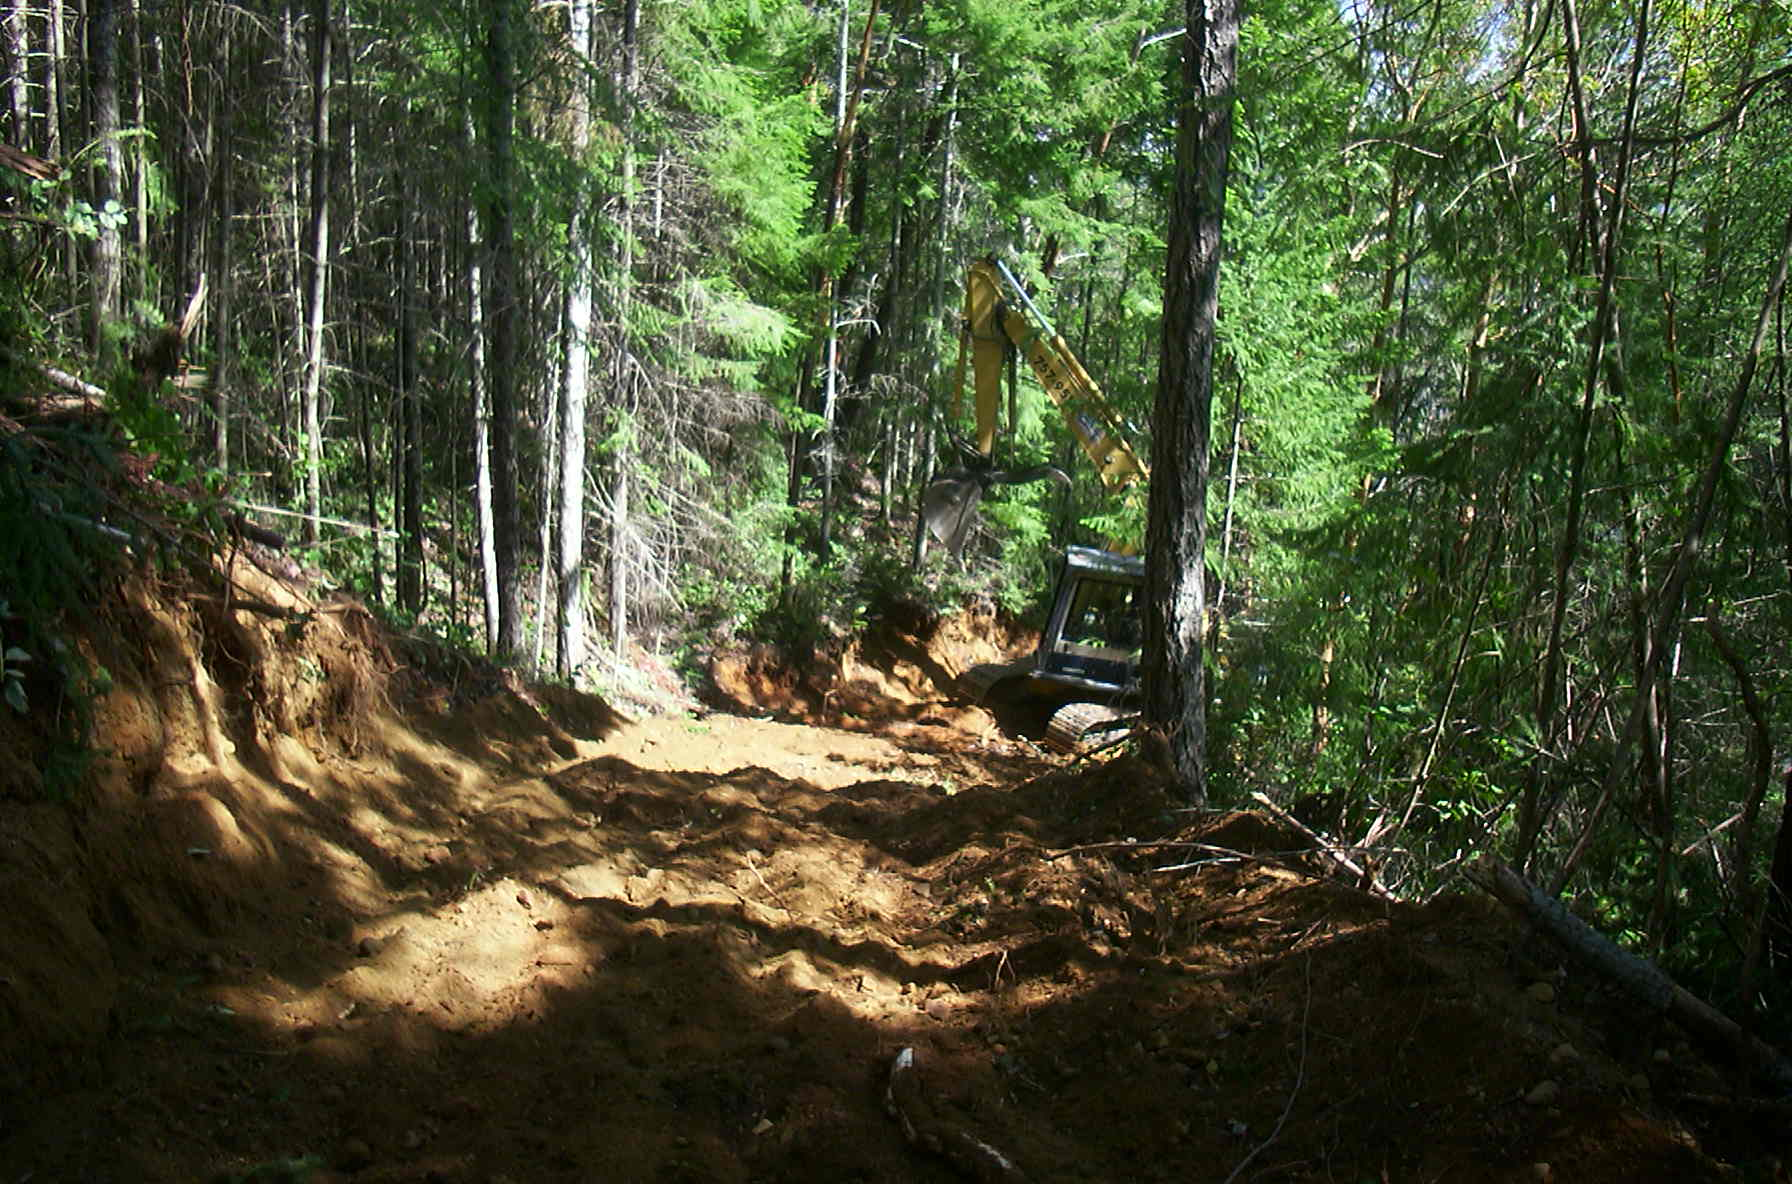 Construction of Driveway